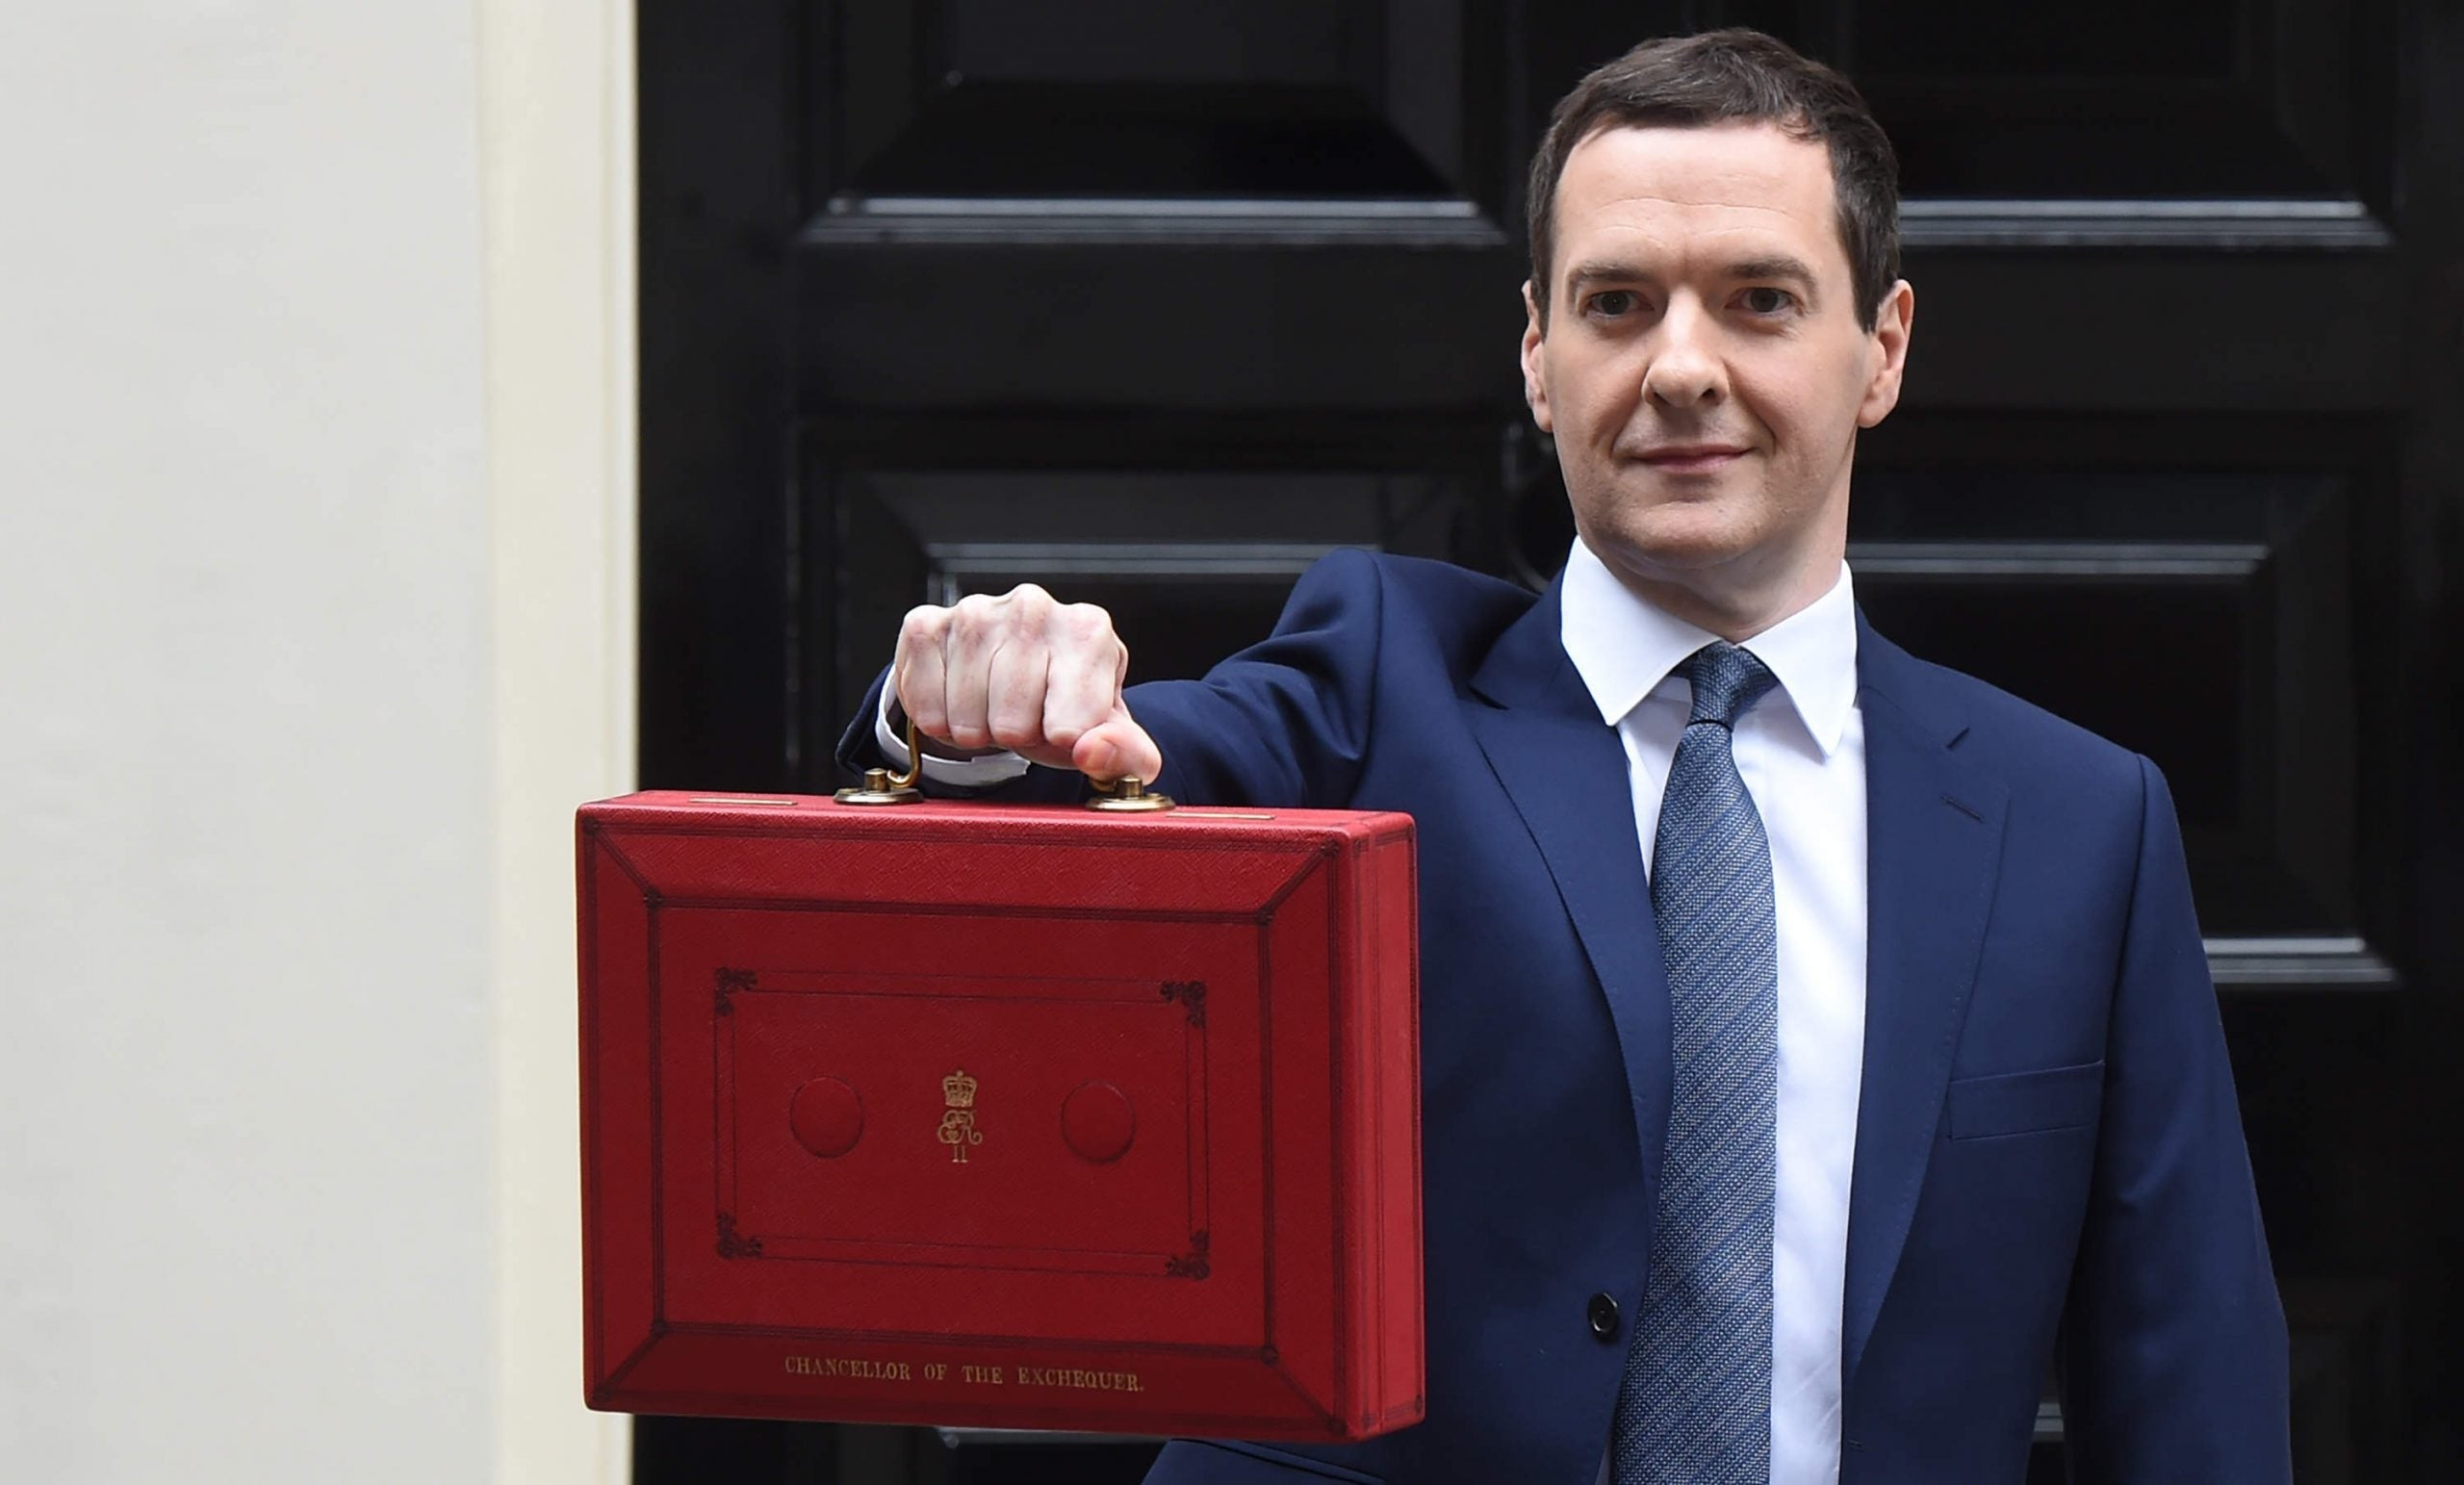 George Osborne's mistakes are coming back to haunt him